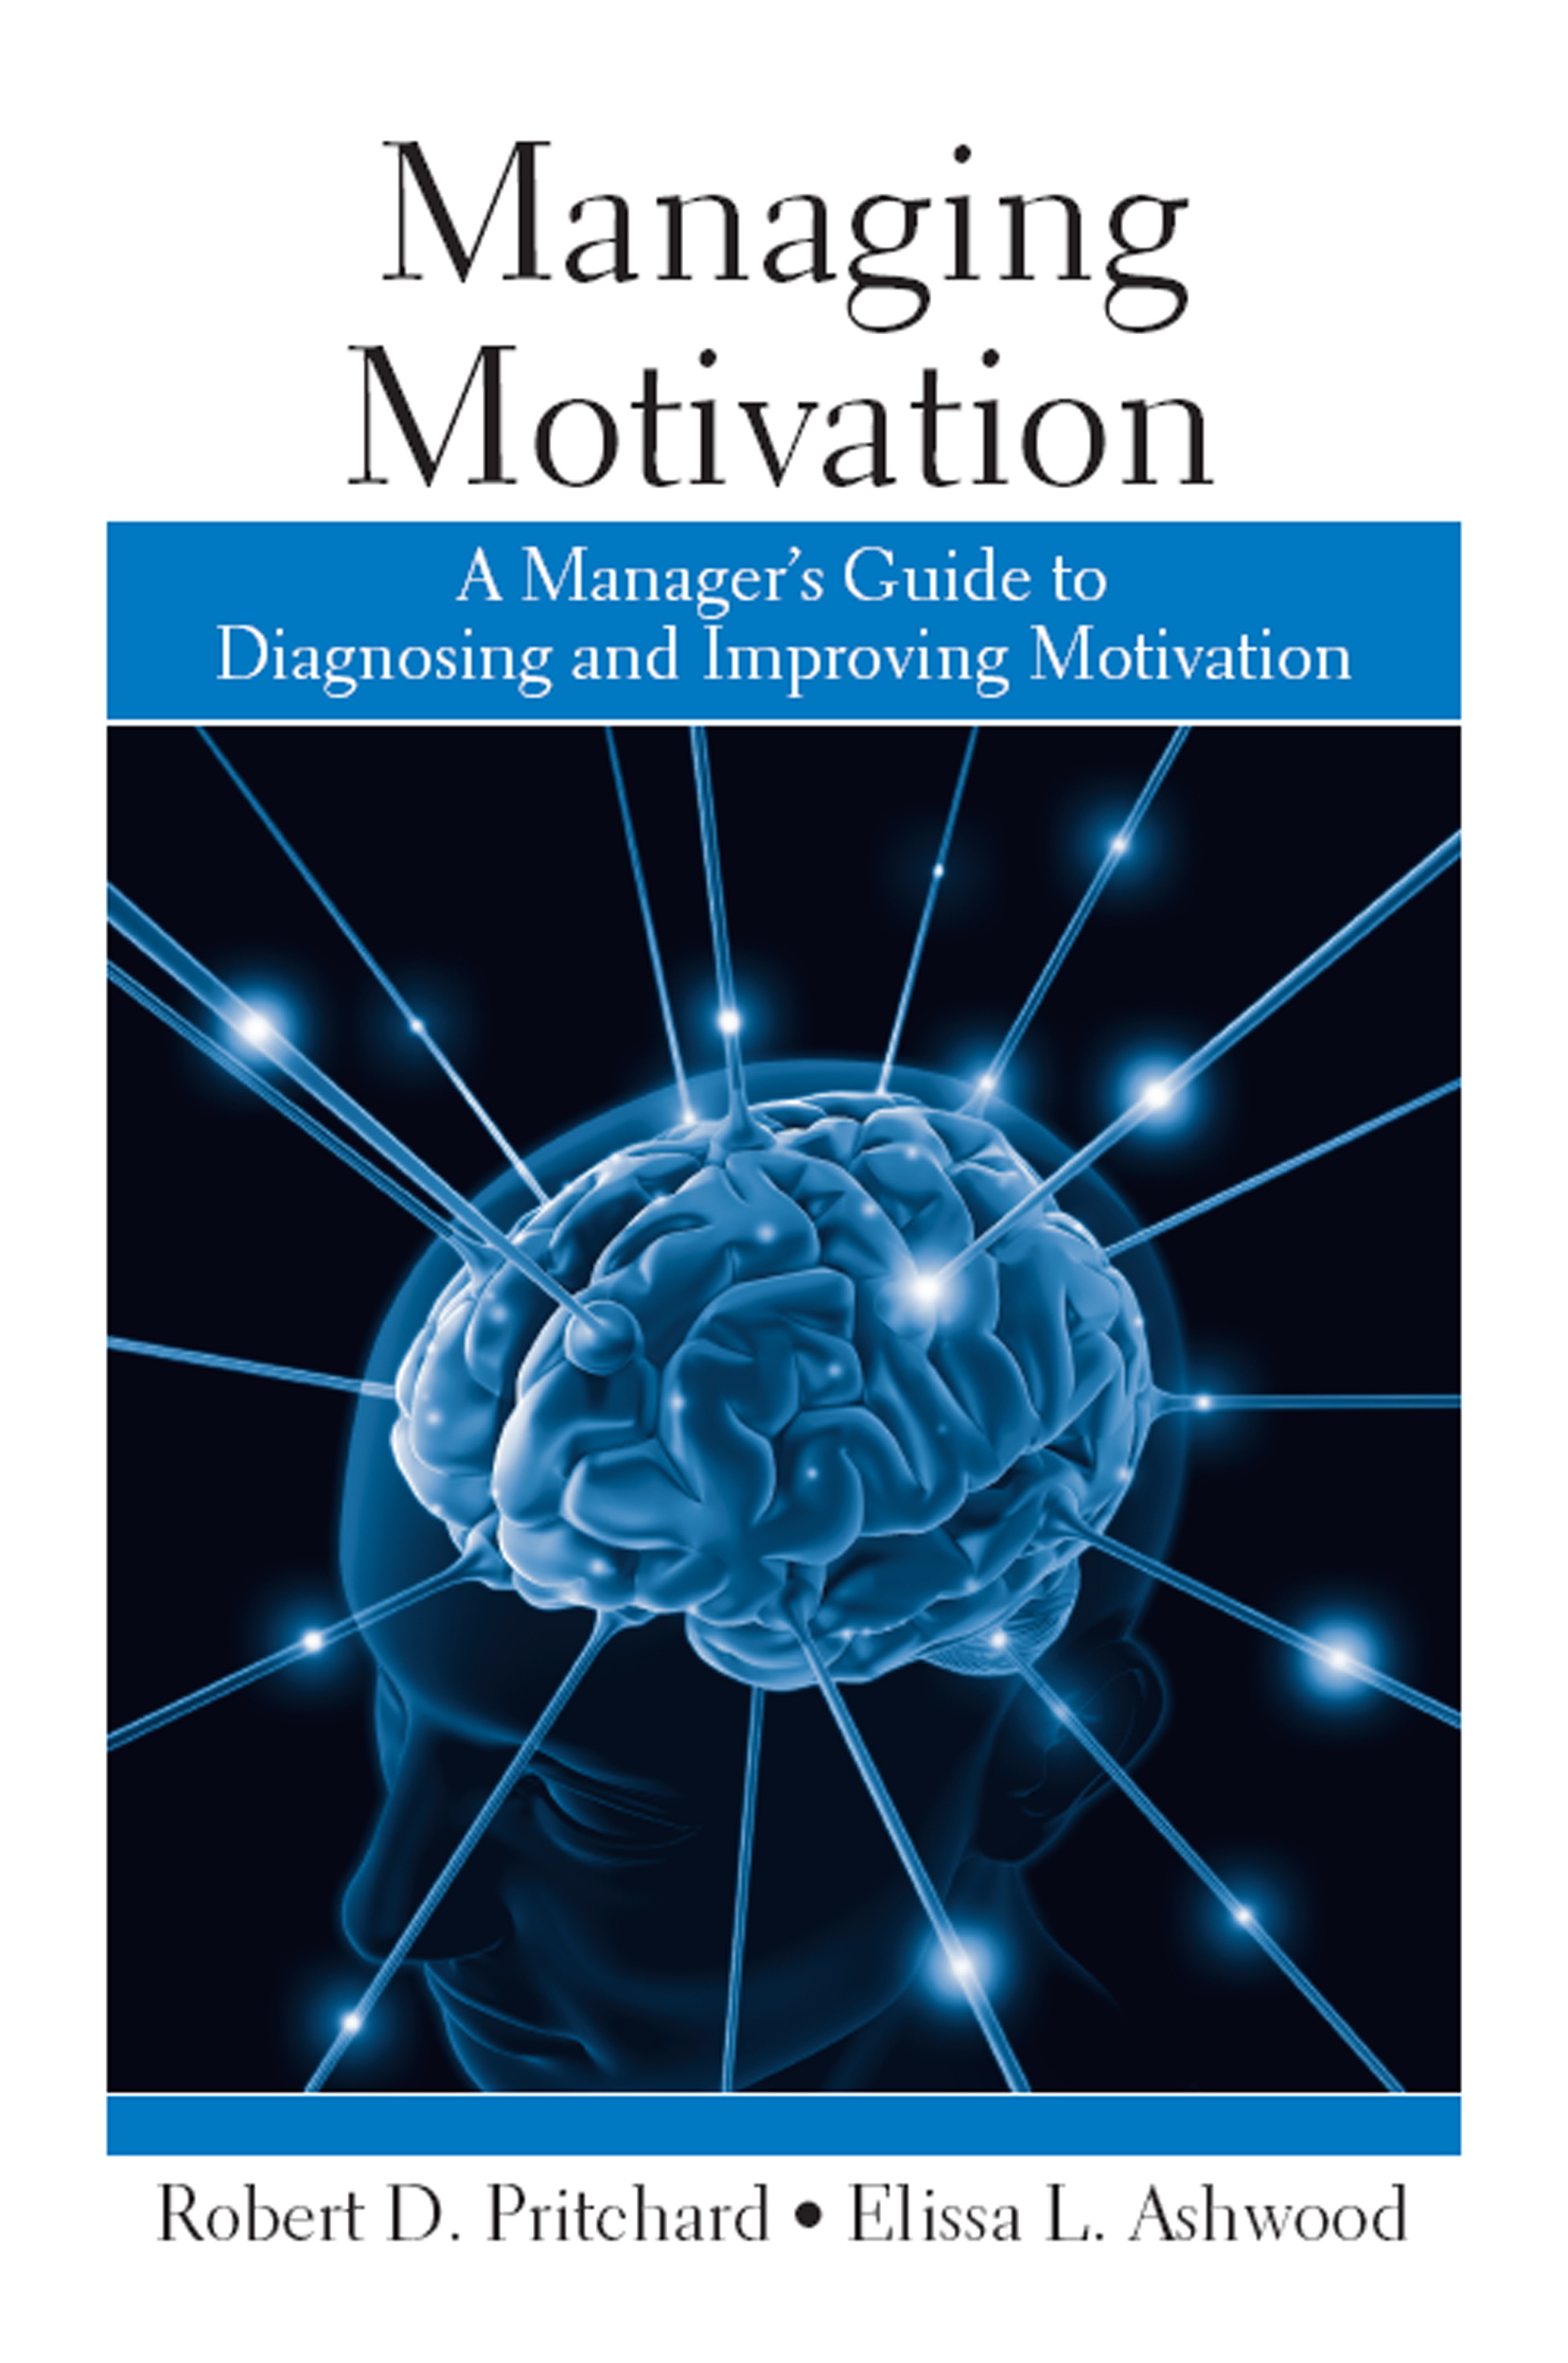 Managing Motivation: A Manager's Guide to Diagnosing and Improving Motivation (Paperback) book cover